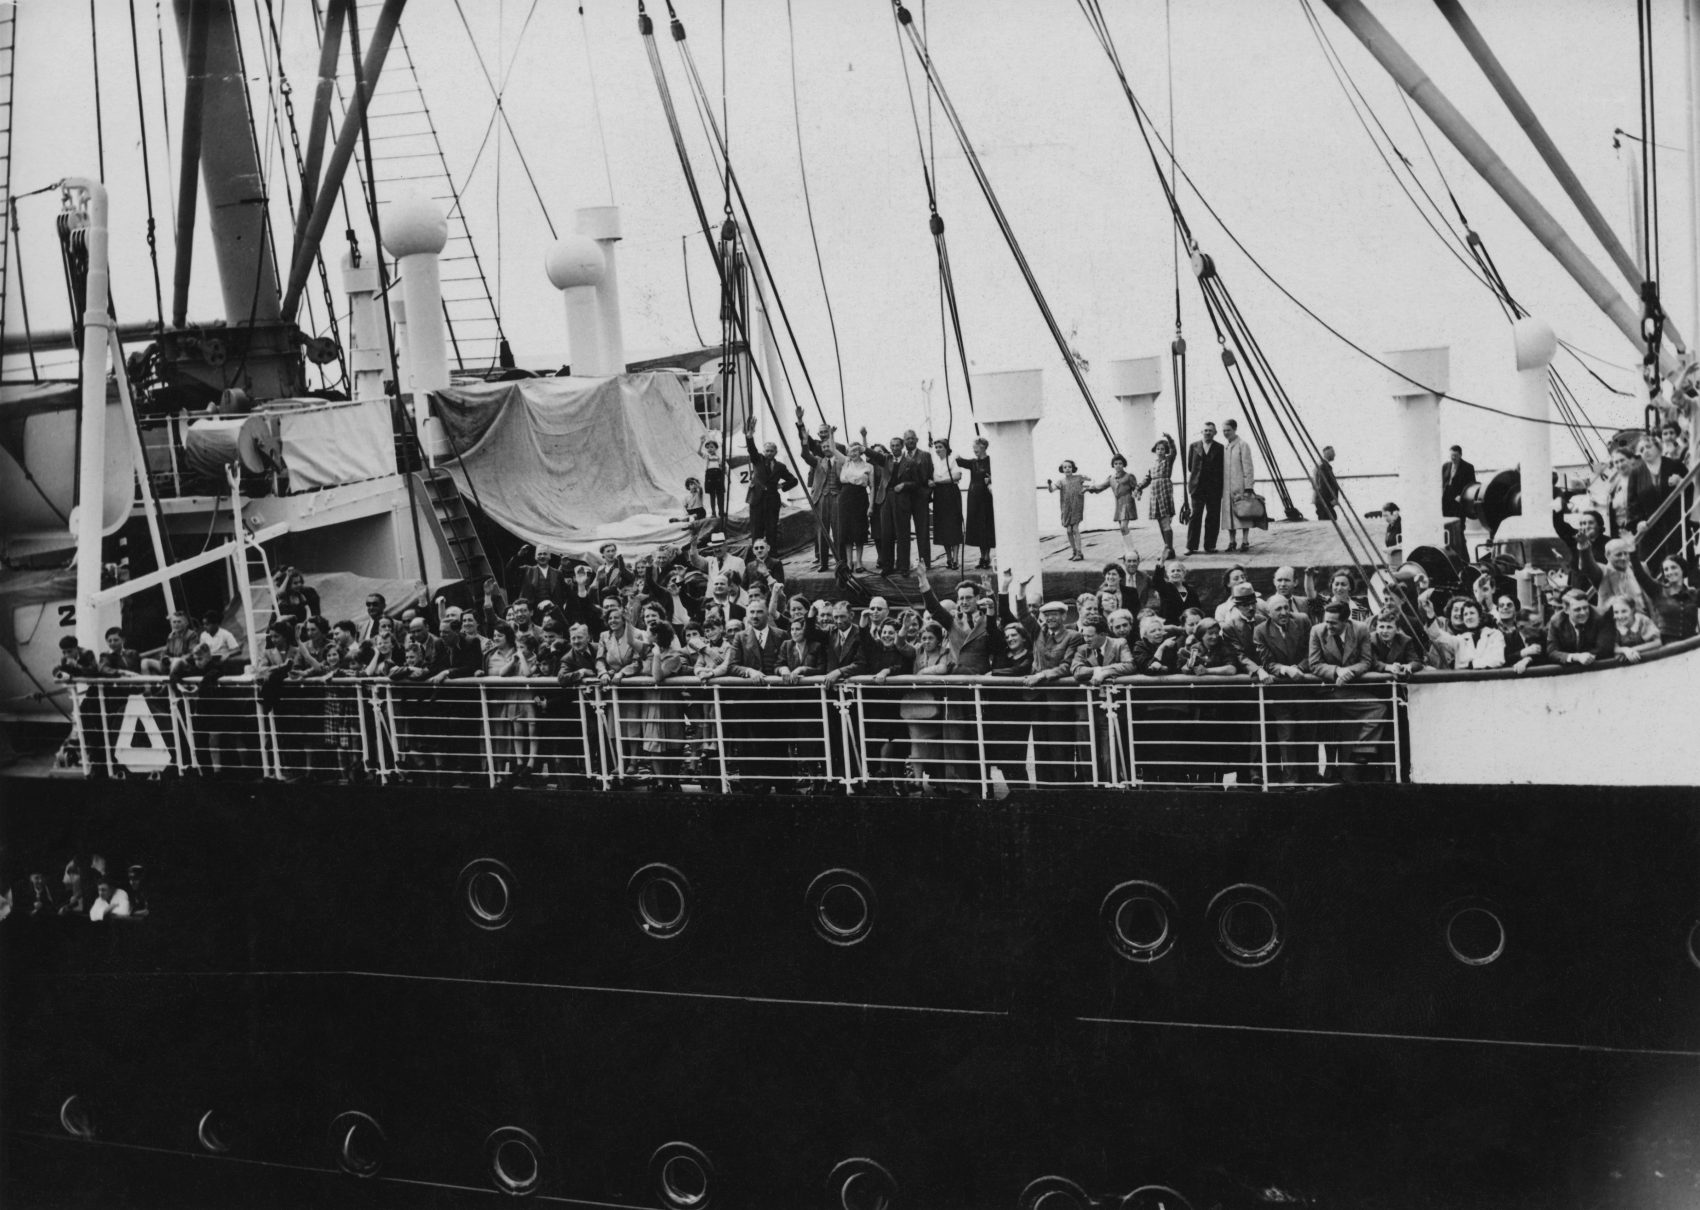 Refugees arrive in Antwerp on the MS St. Louis on June 17, 1939,